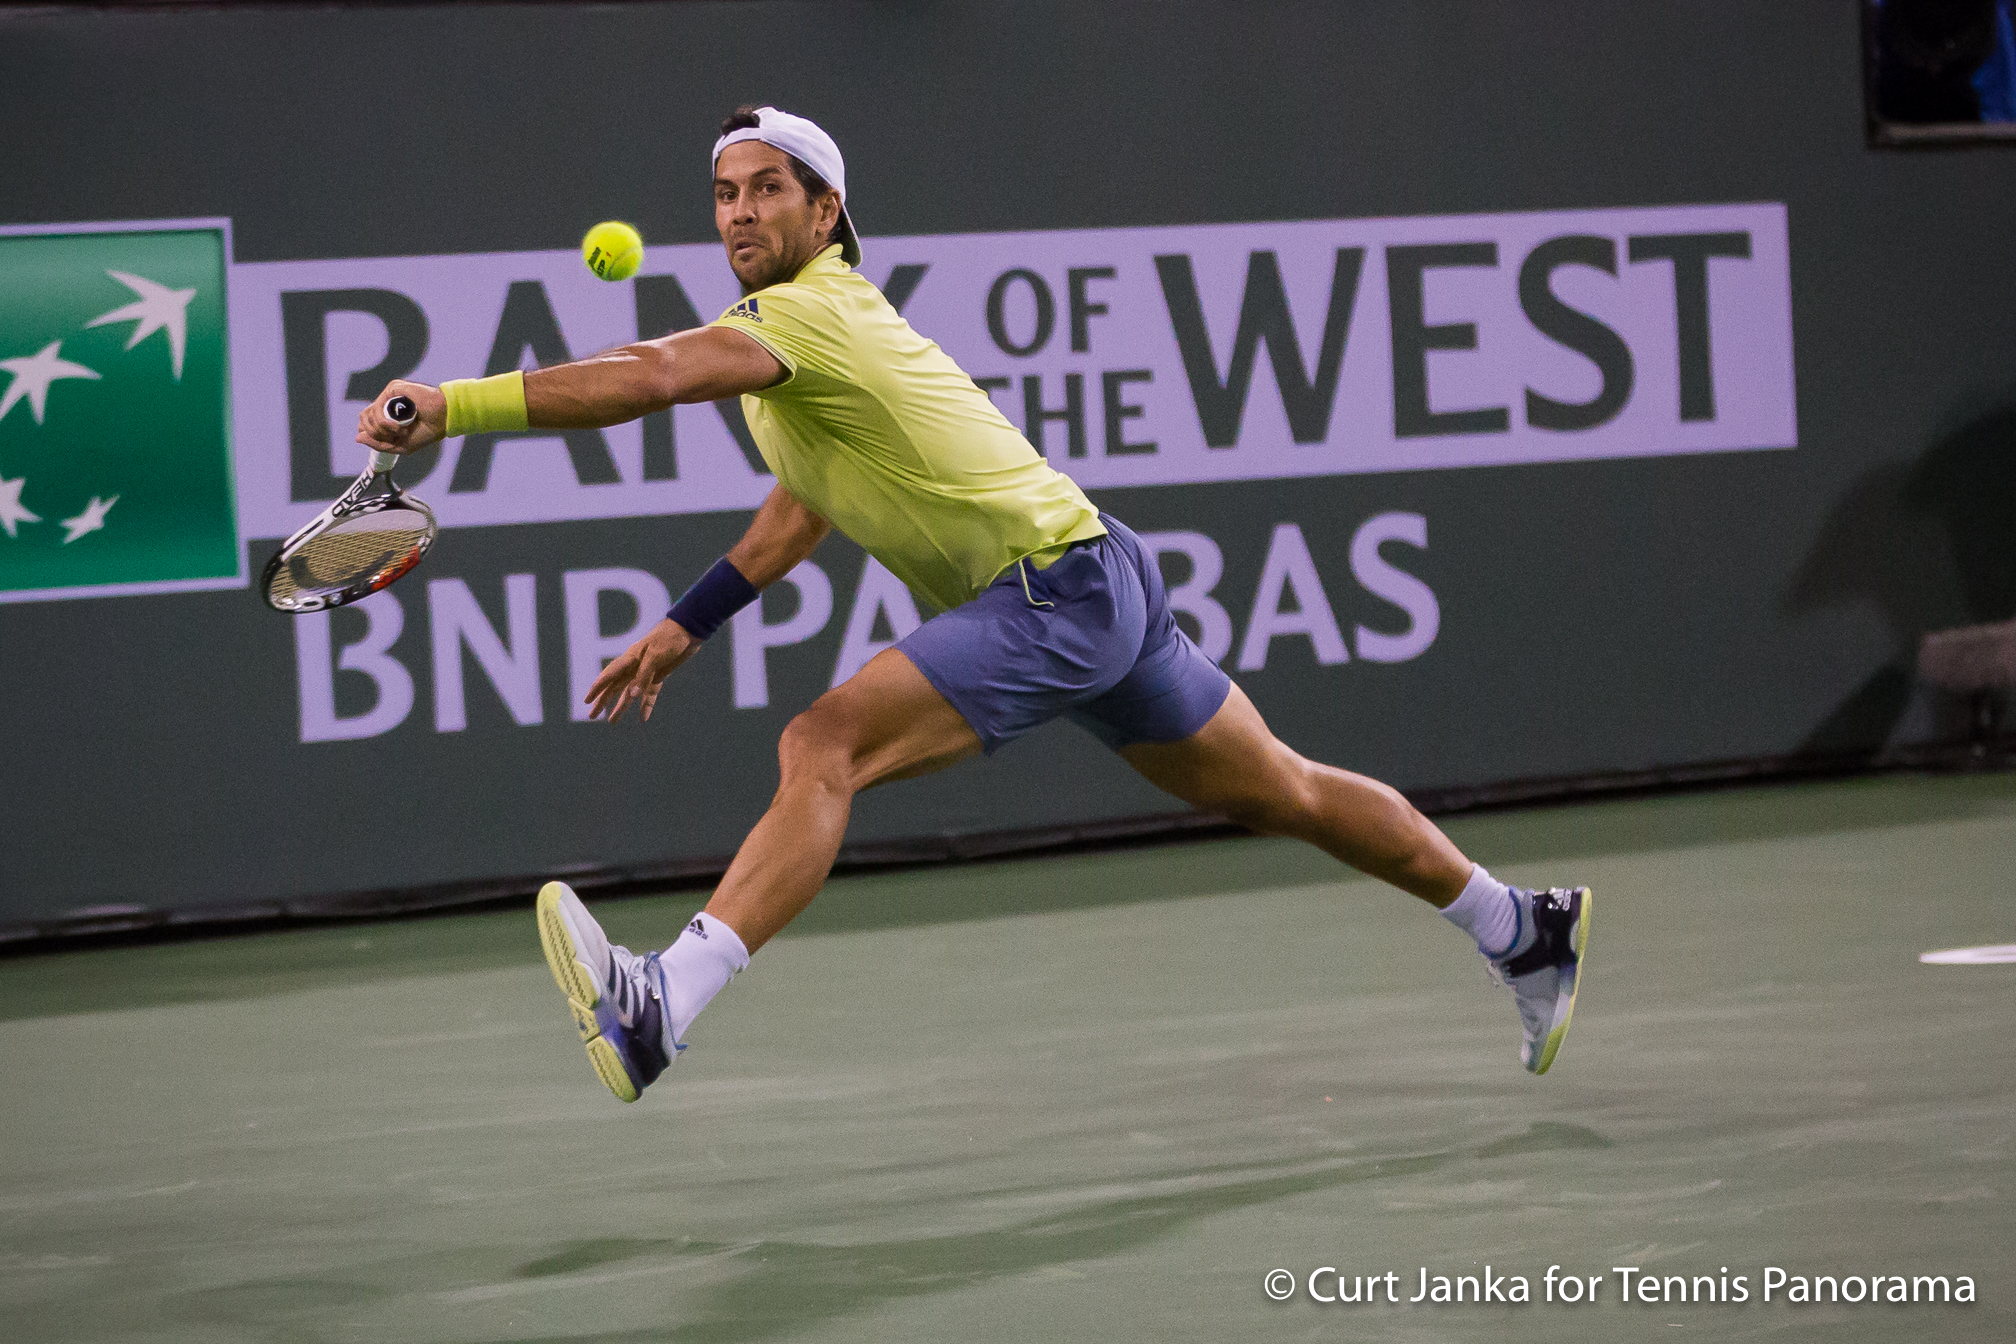 Federer dispatches Krajinovic to advance at Indian Wells